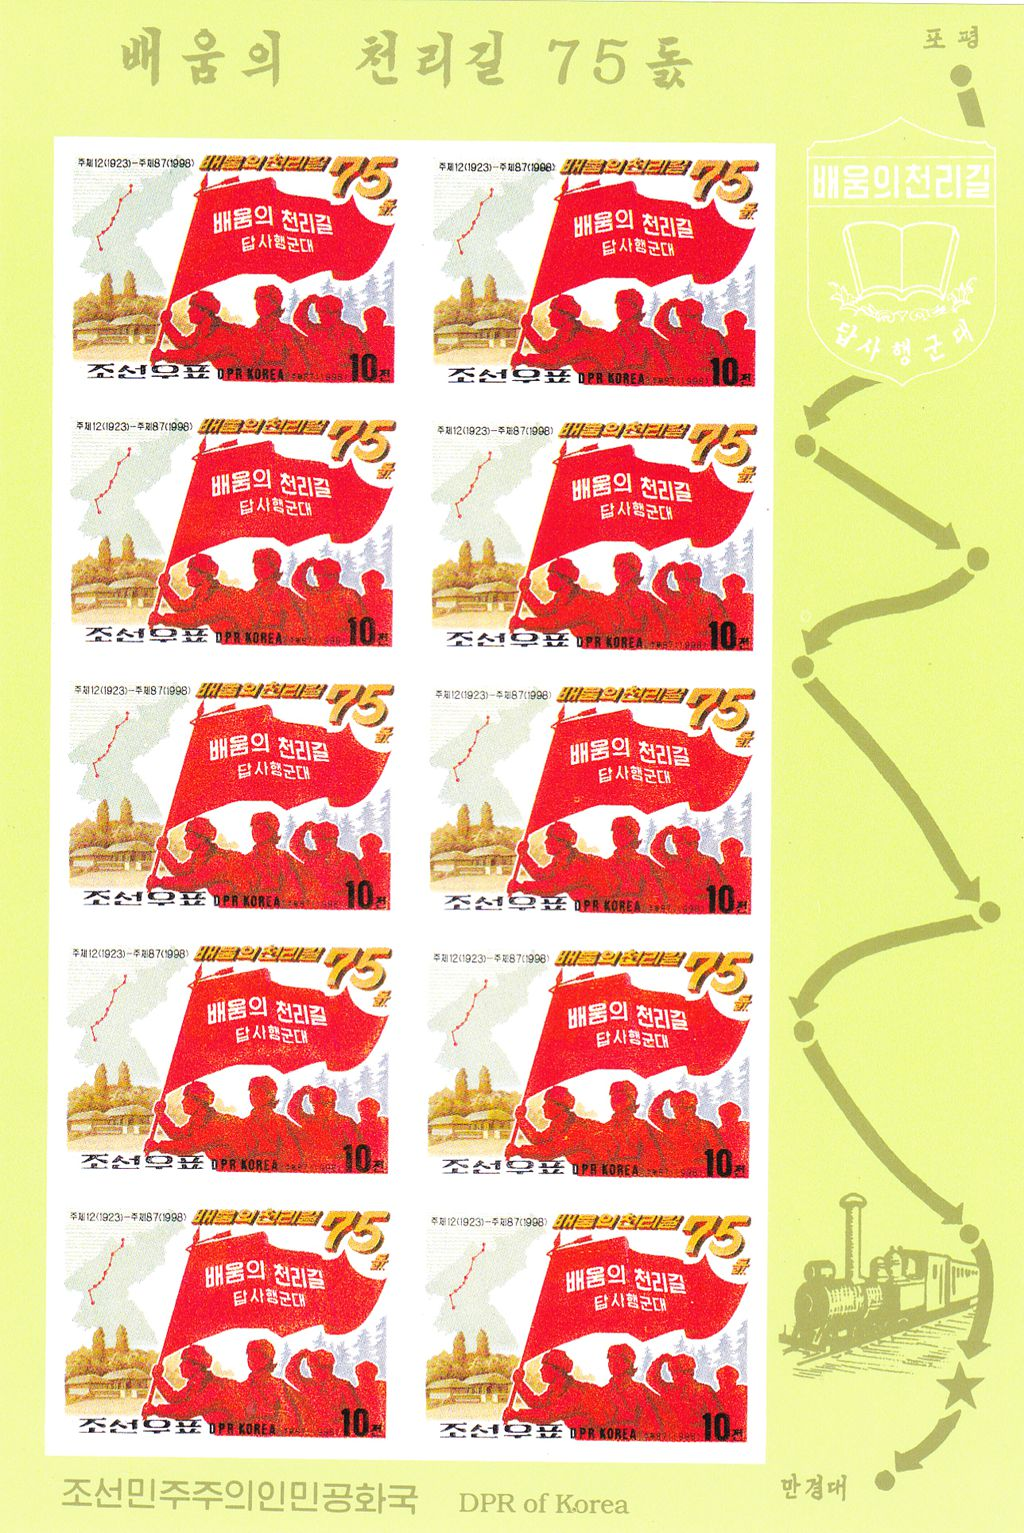 "L4456, Korea ""75th Anniv. 500 Mile Journey for Learning"", Full Stamp Sheet, 2008 Imperforate"